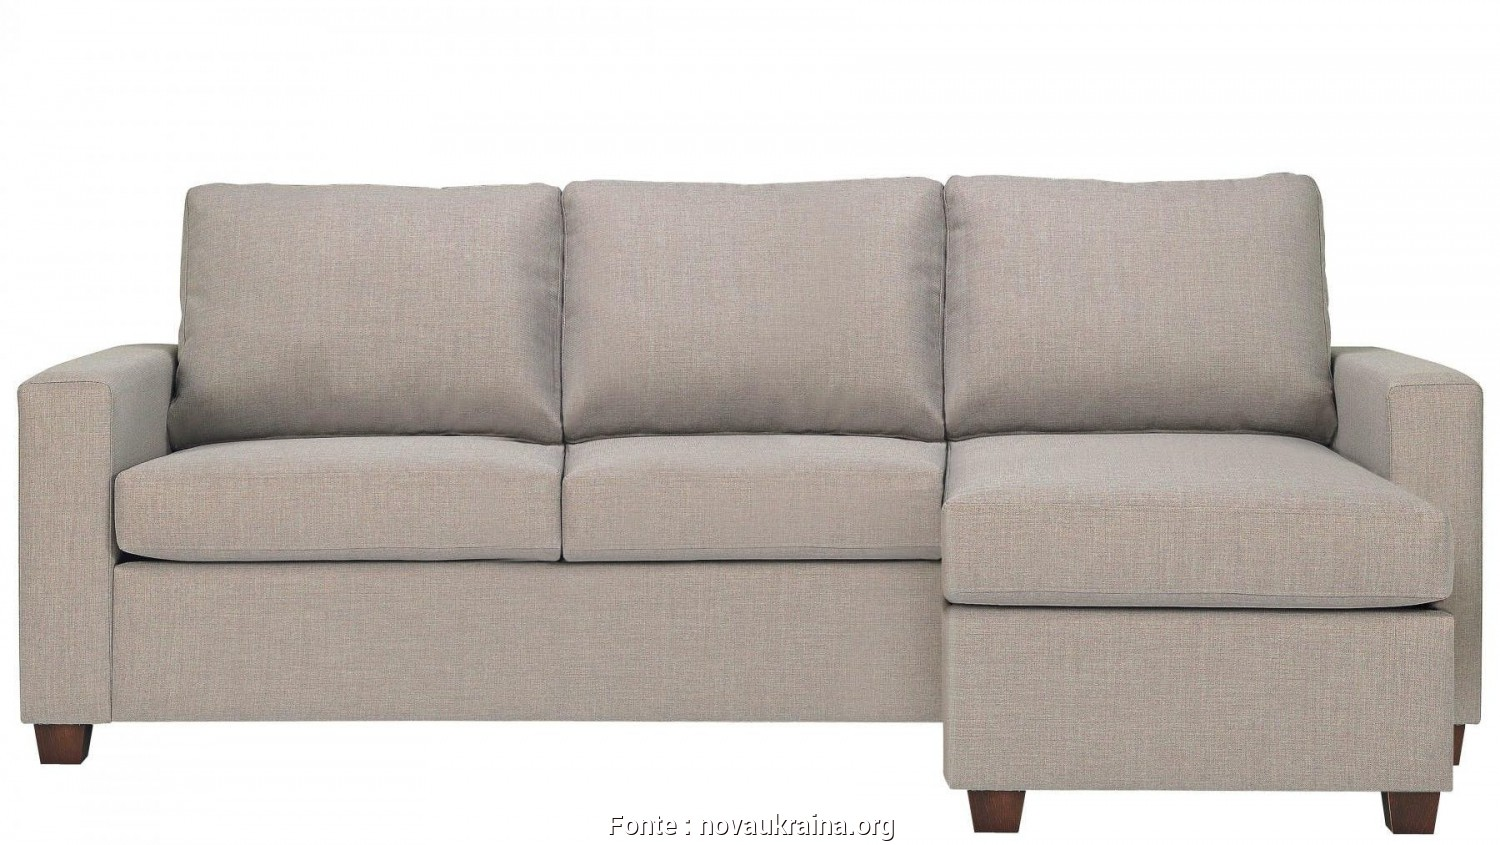 Backabro Ikea At, Semplice Chaise Sofa, Ikea Vilasund, Backabro Review Return Relating To